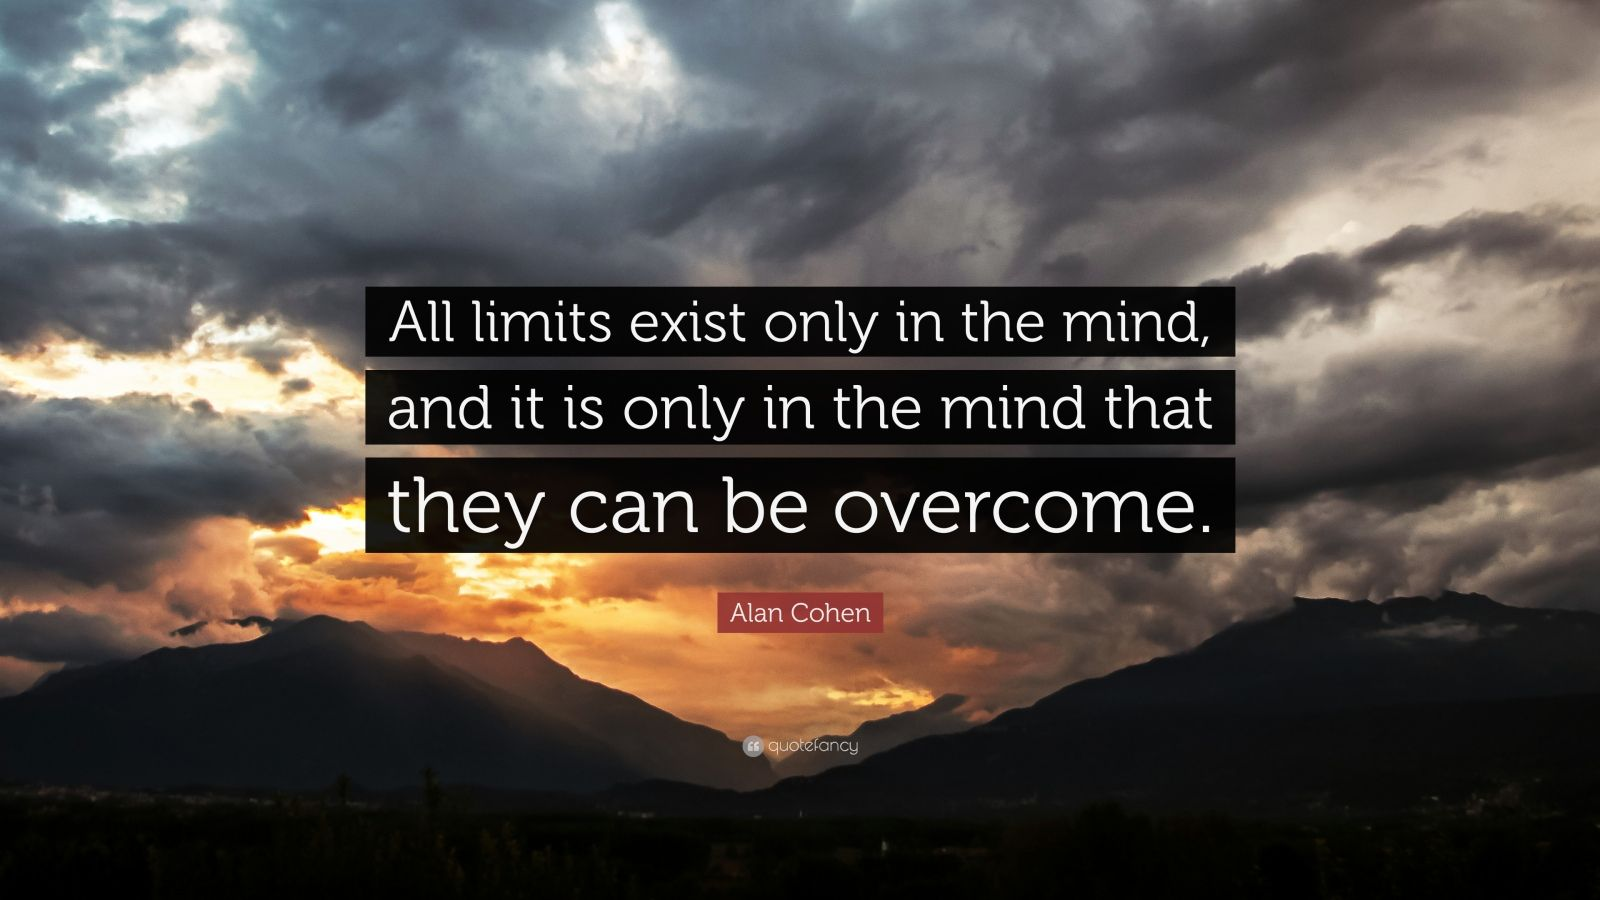 """Alan Cohen Quote: """"All limits exist only in the mind, and it is only in the mind that they can be overcome."""""""